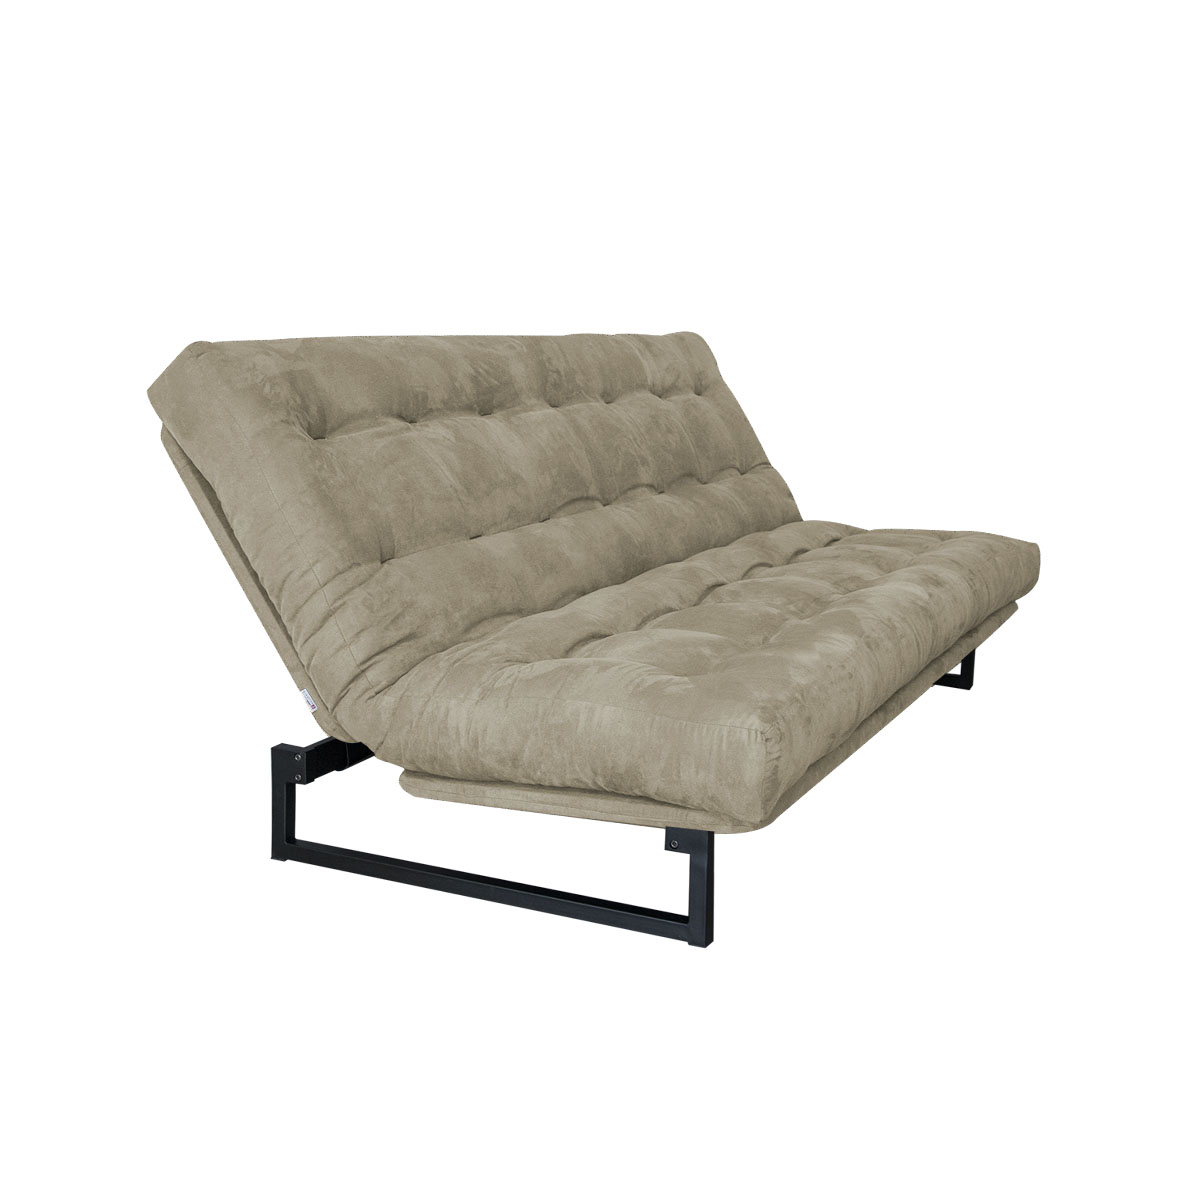 Futon sofa cama for Sofa cama opiniones